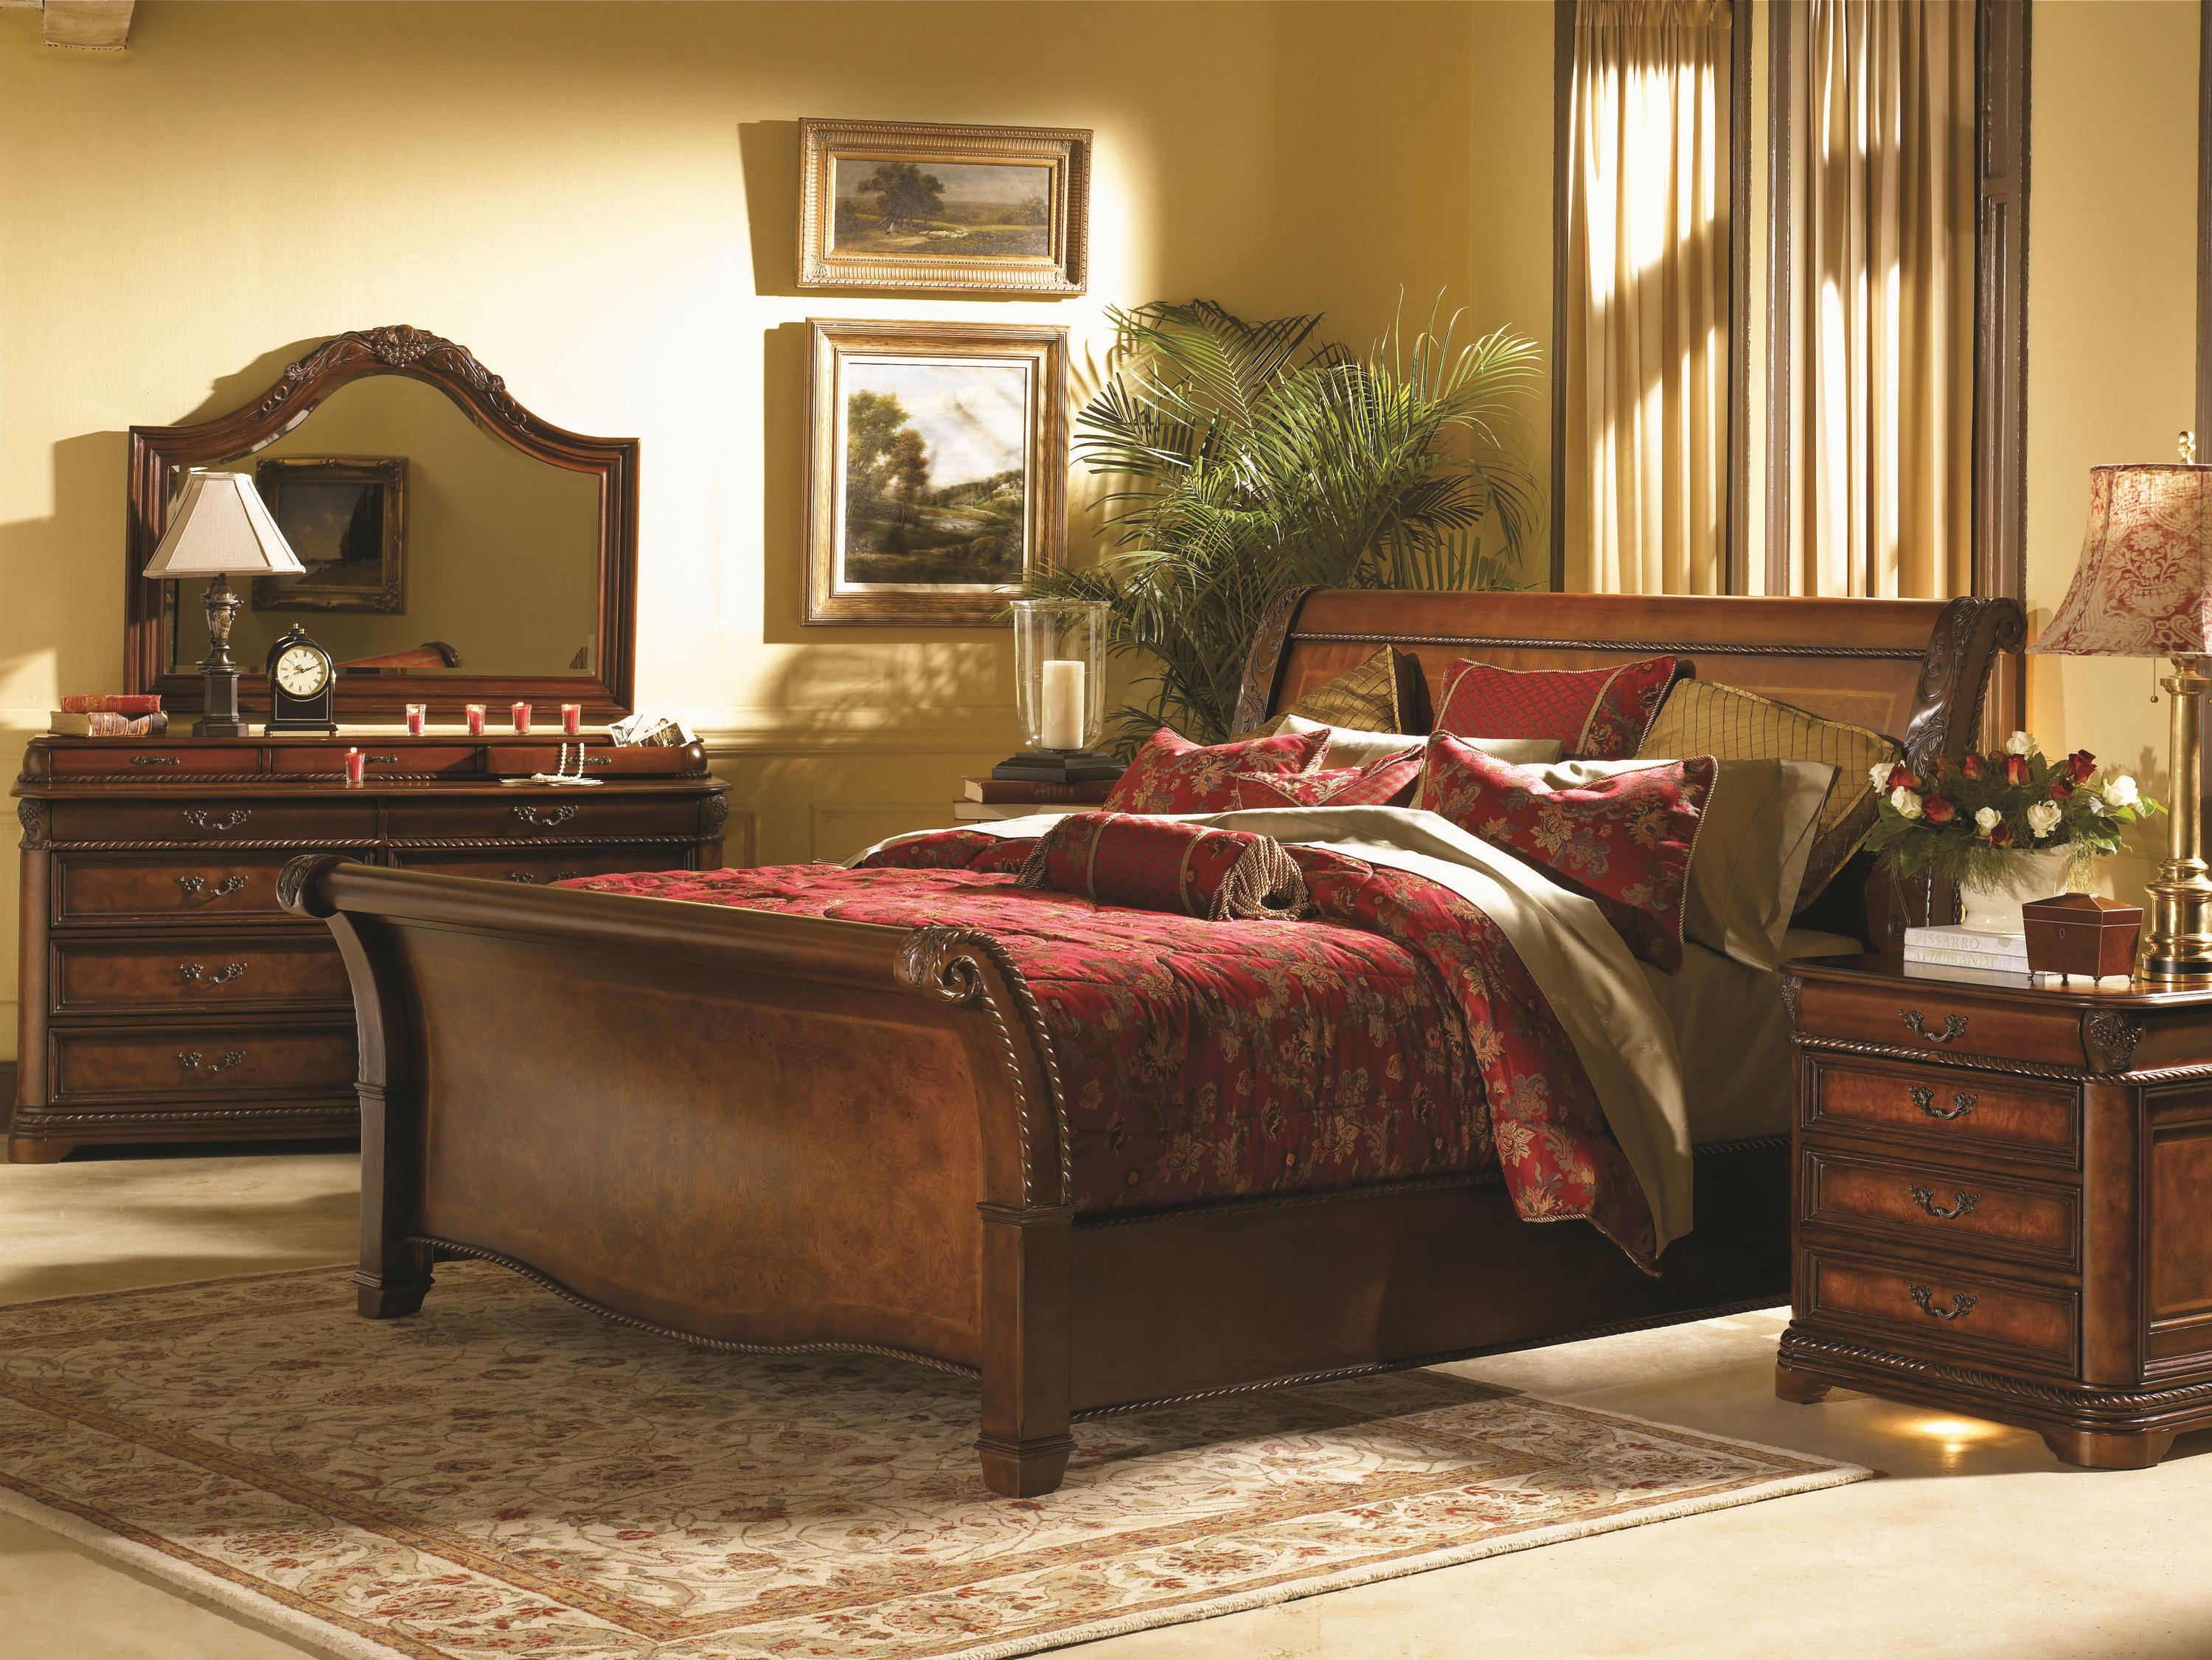 Aspenhome Napa I74 400 401 402 Queen Size Sleigh Bed With High Profile Footboard Pilgrim